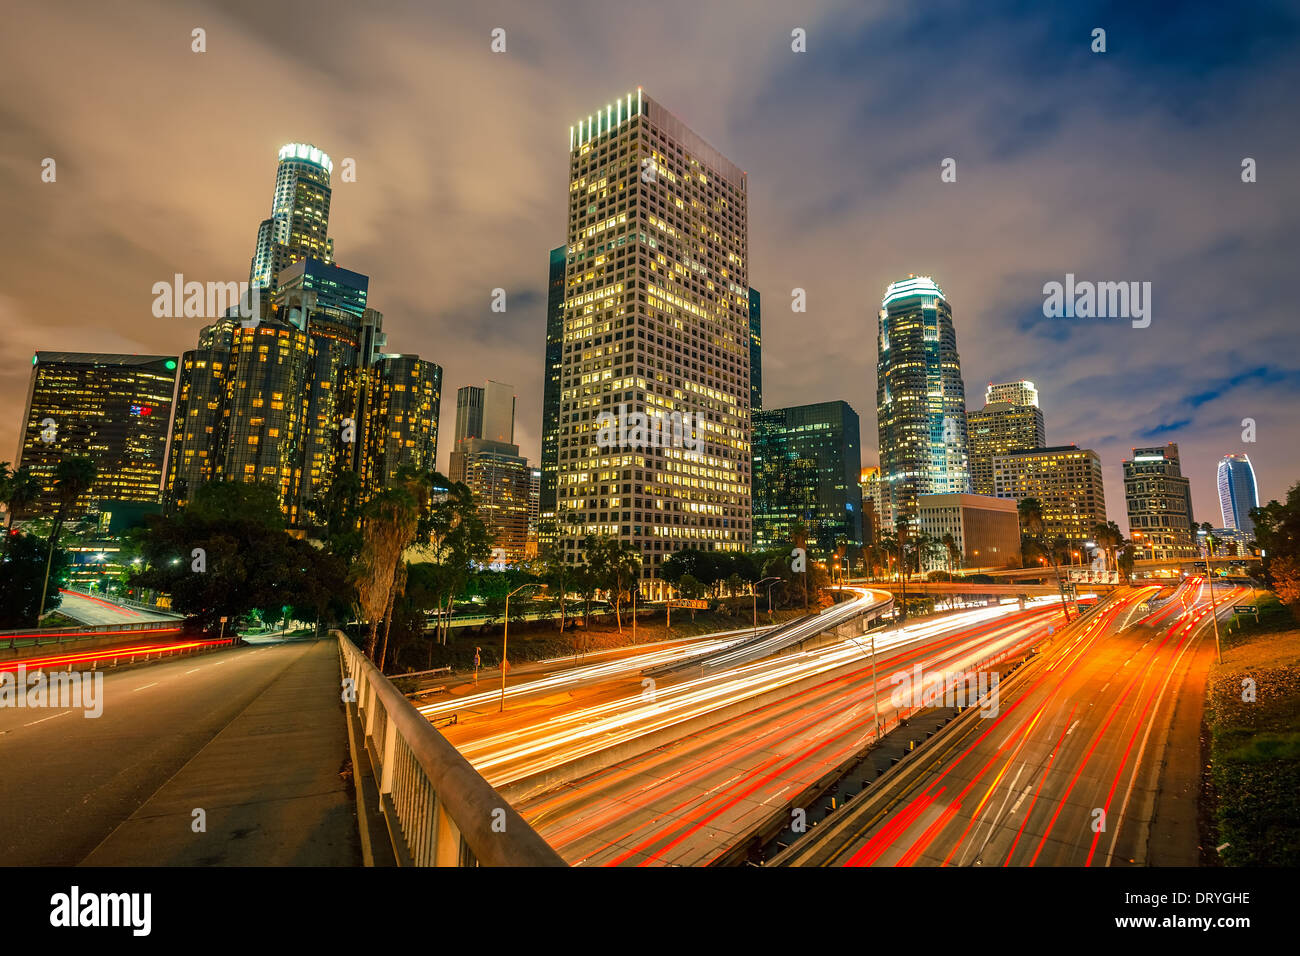 Los Angeles at night Photo Stock